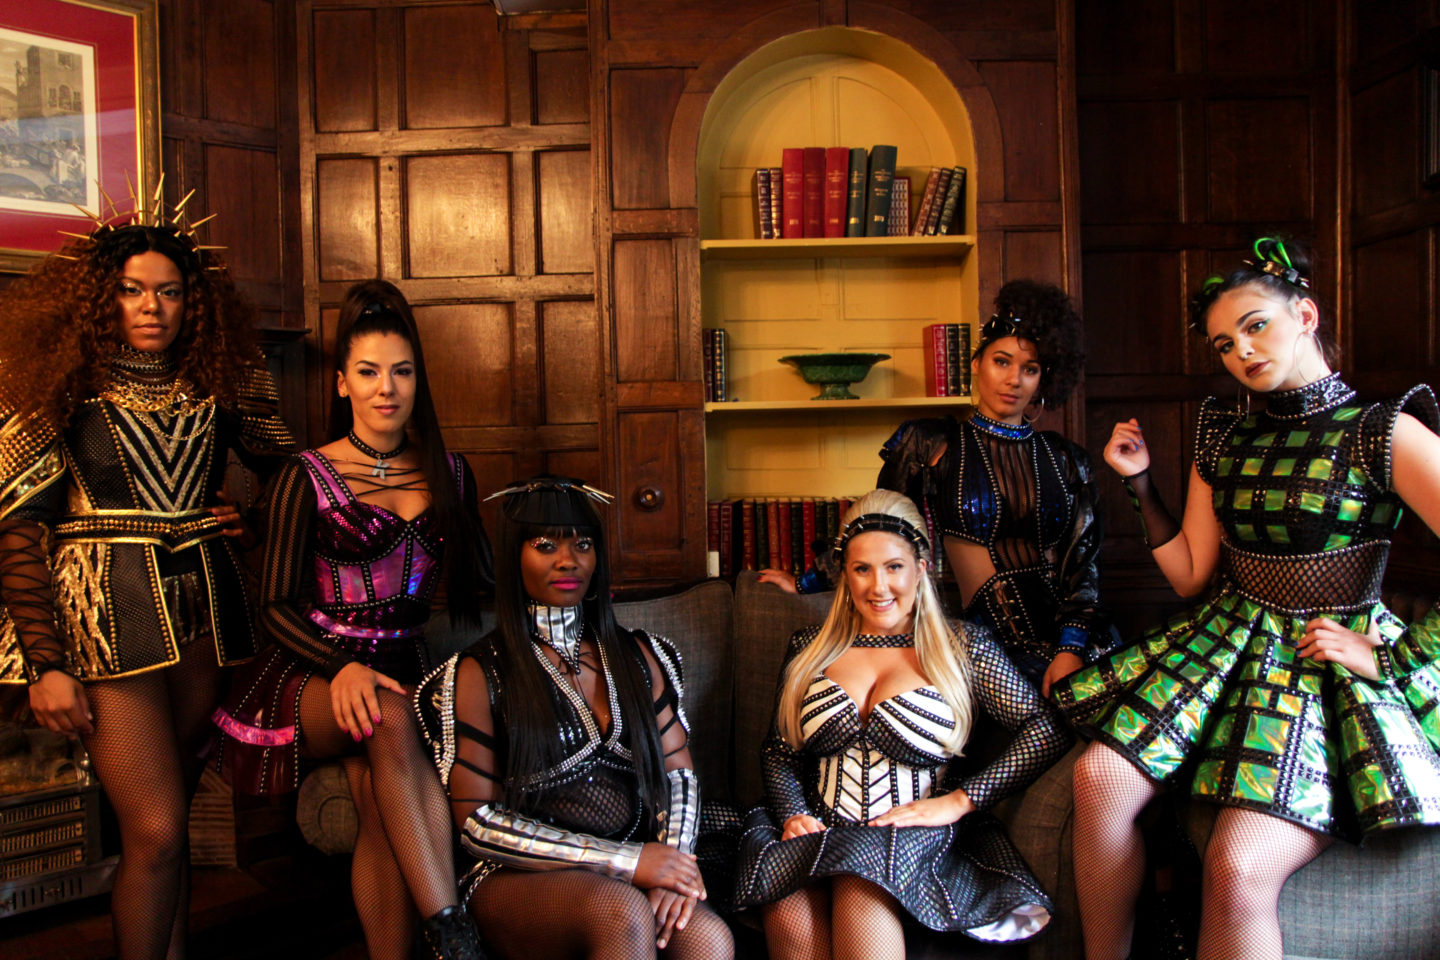 Six The Musical Cast members at a Norwich Hotel